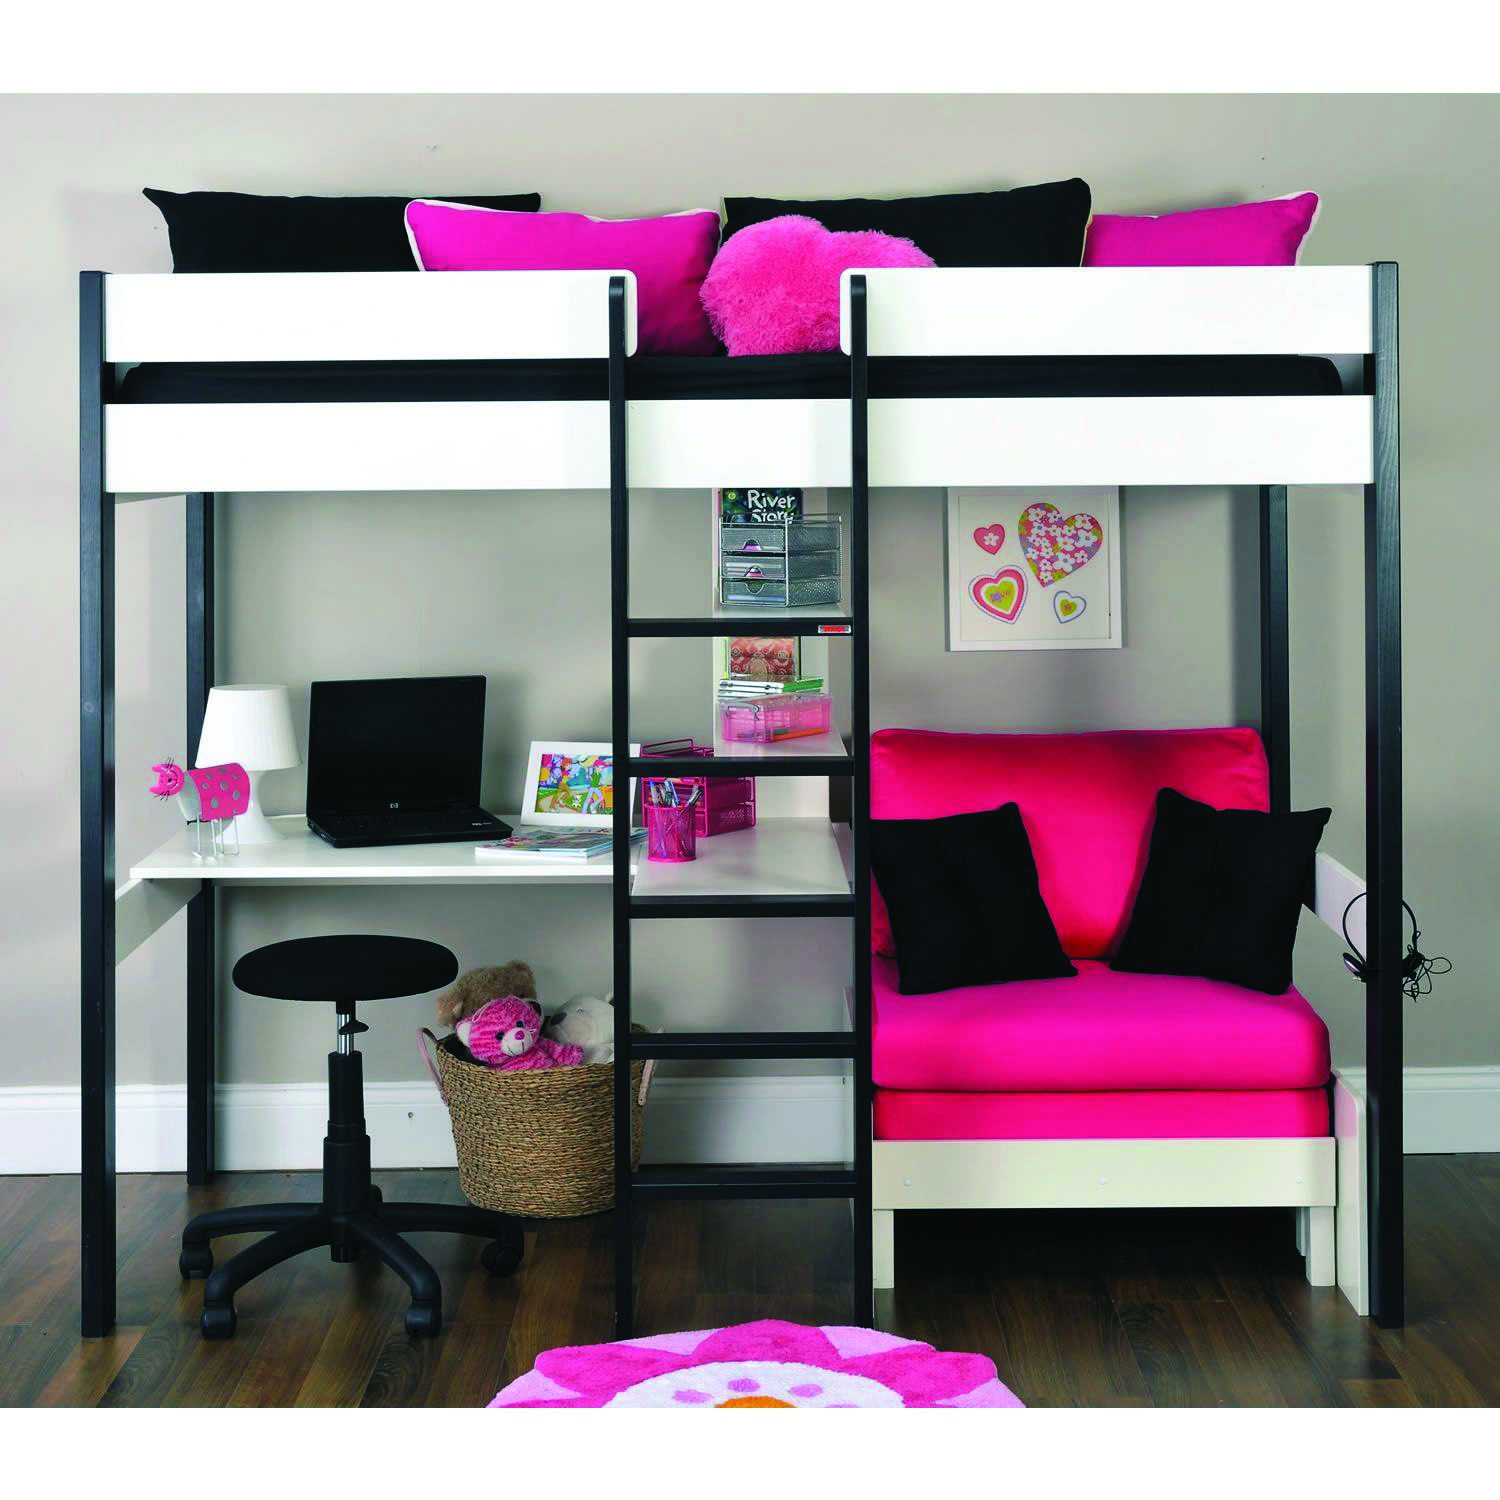 8 Loft Bedroom Ideas For Your Tiny Bed Room Homes Tre White Loft Bed Loft Bed With Couch Girls Loft Bed